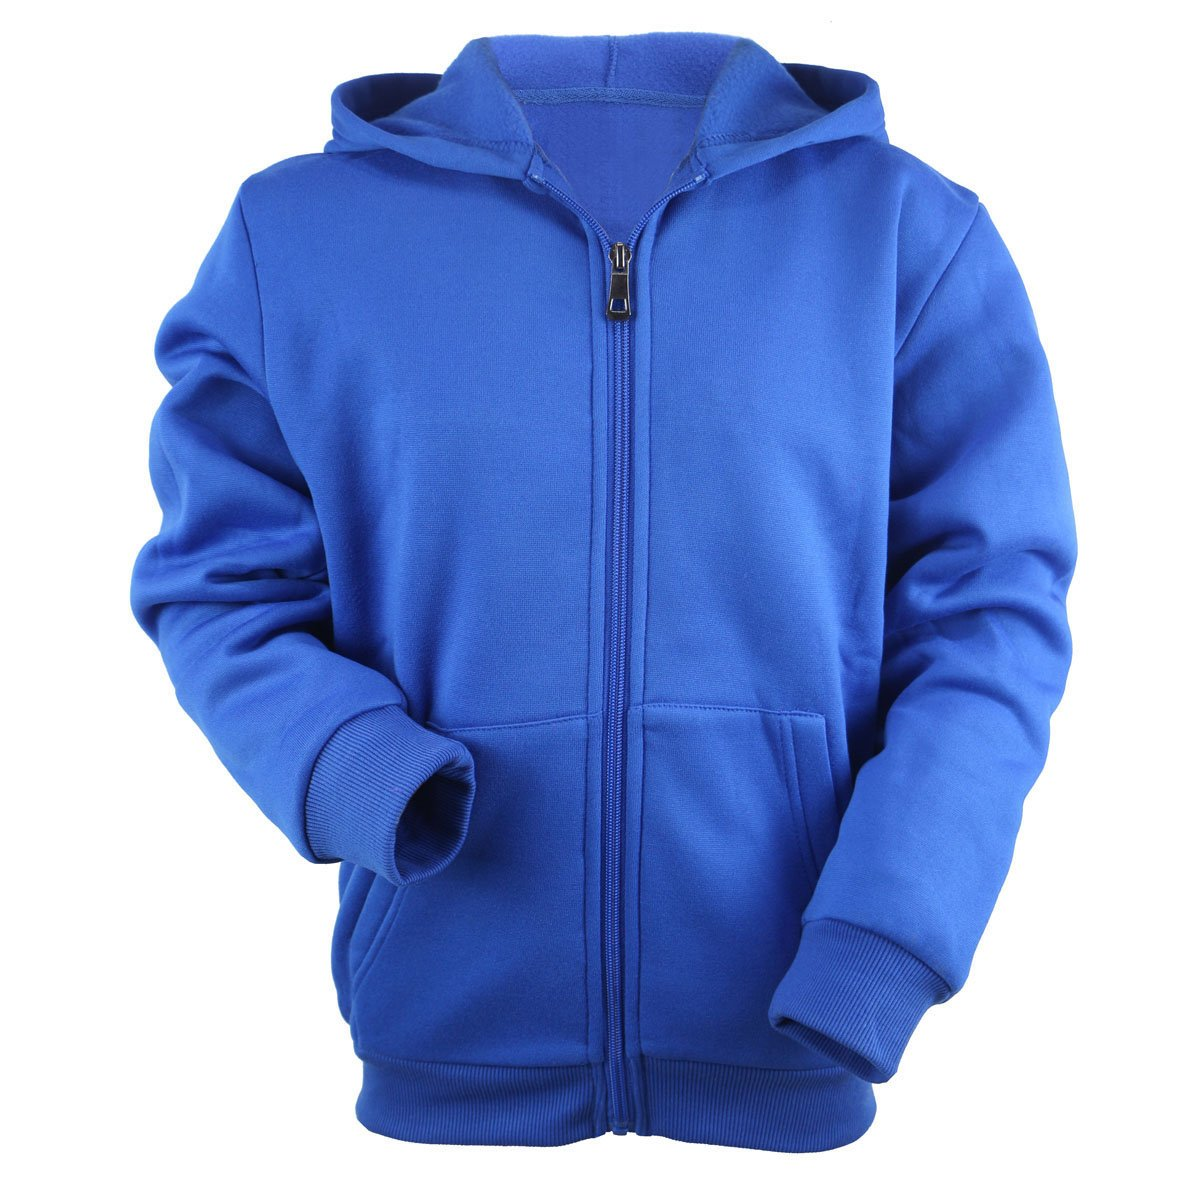 Urimoser Hoodies for Boys Full Zip Lightweight Fleece Athletic Kids Sweatshirt